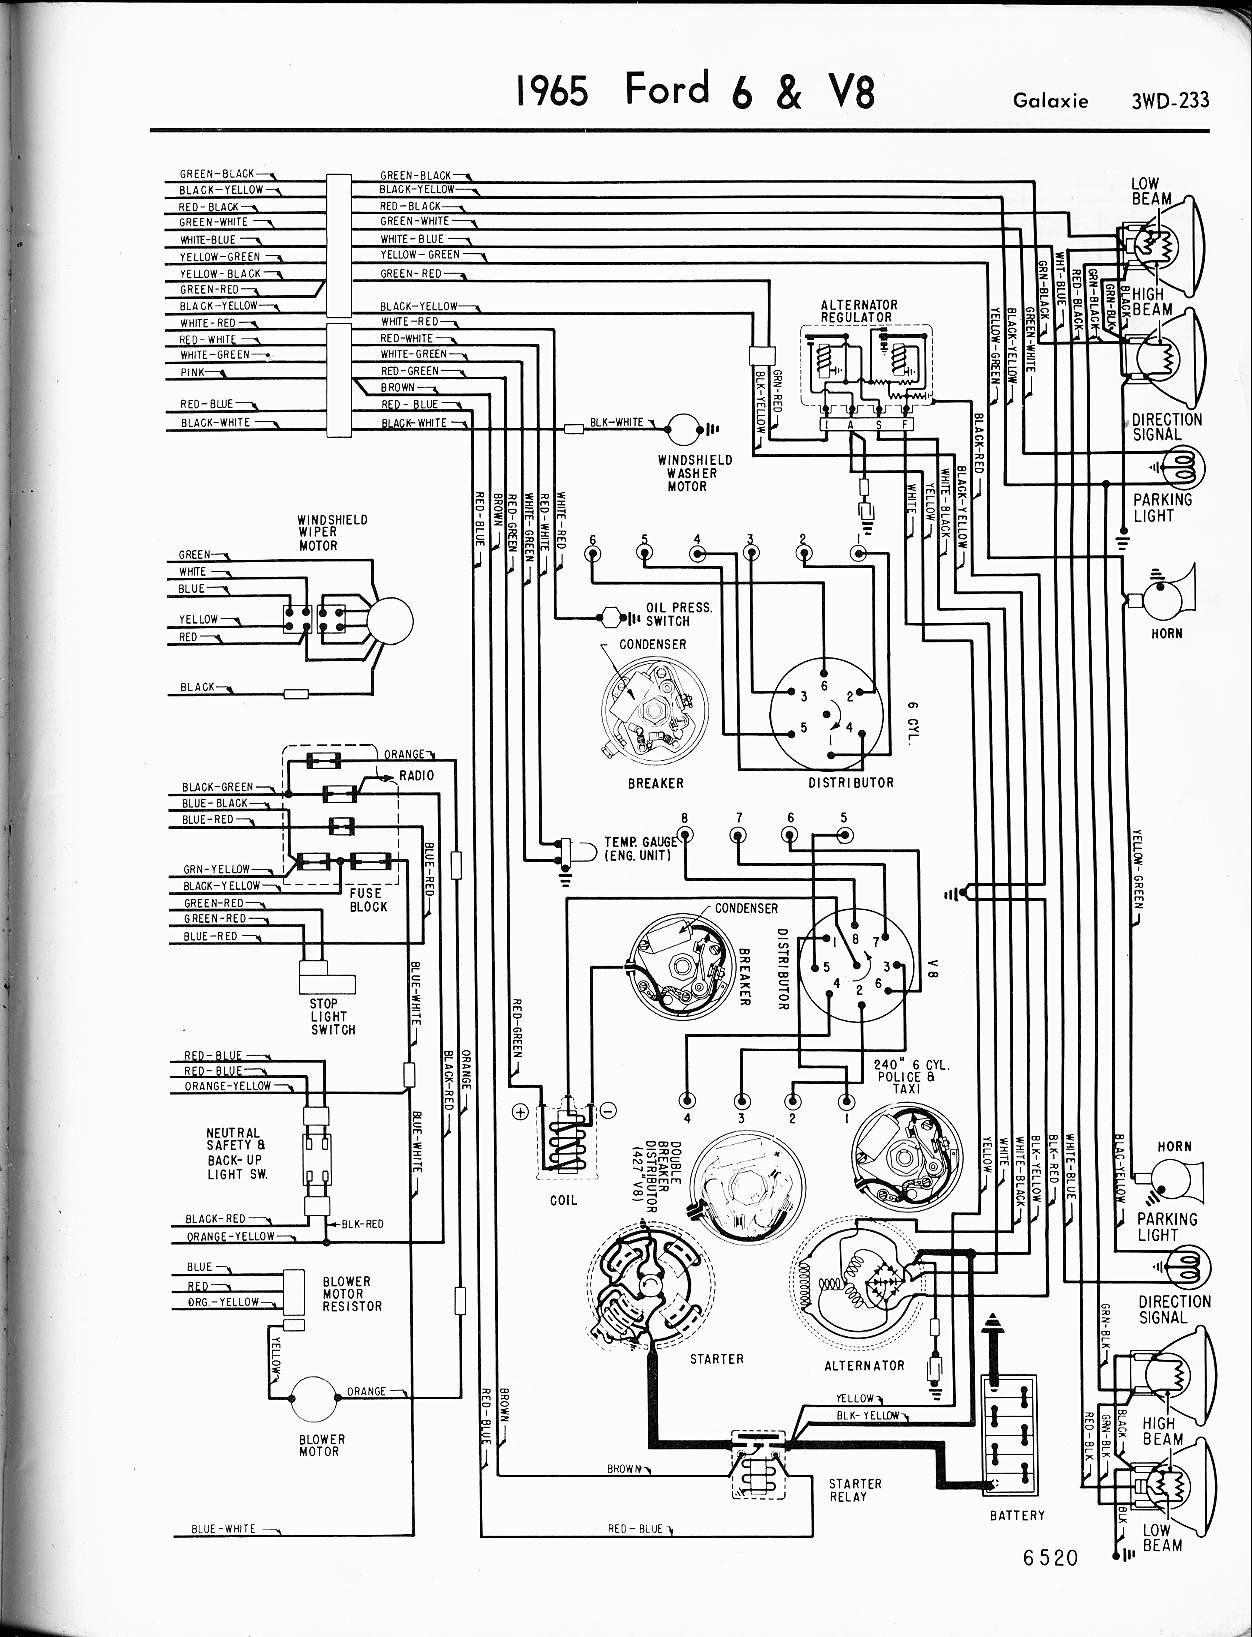 2007 ford Focus Engine Diagram 1965 ford Wiring Diagrams Another Blog About Wiring Diagram • Of 2007 ford Focus Engine Diagram